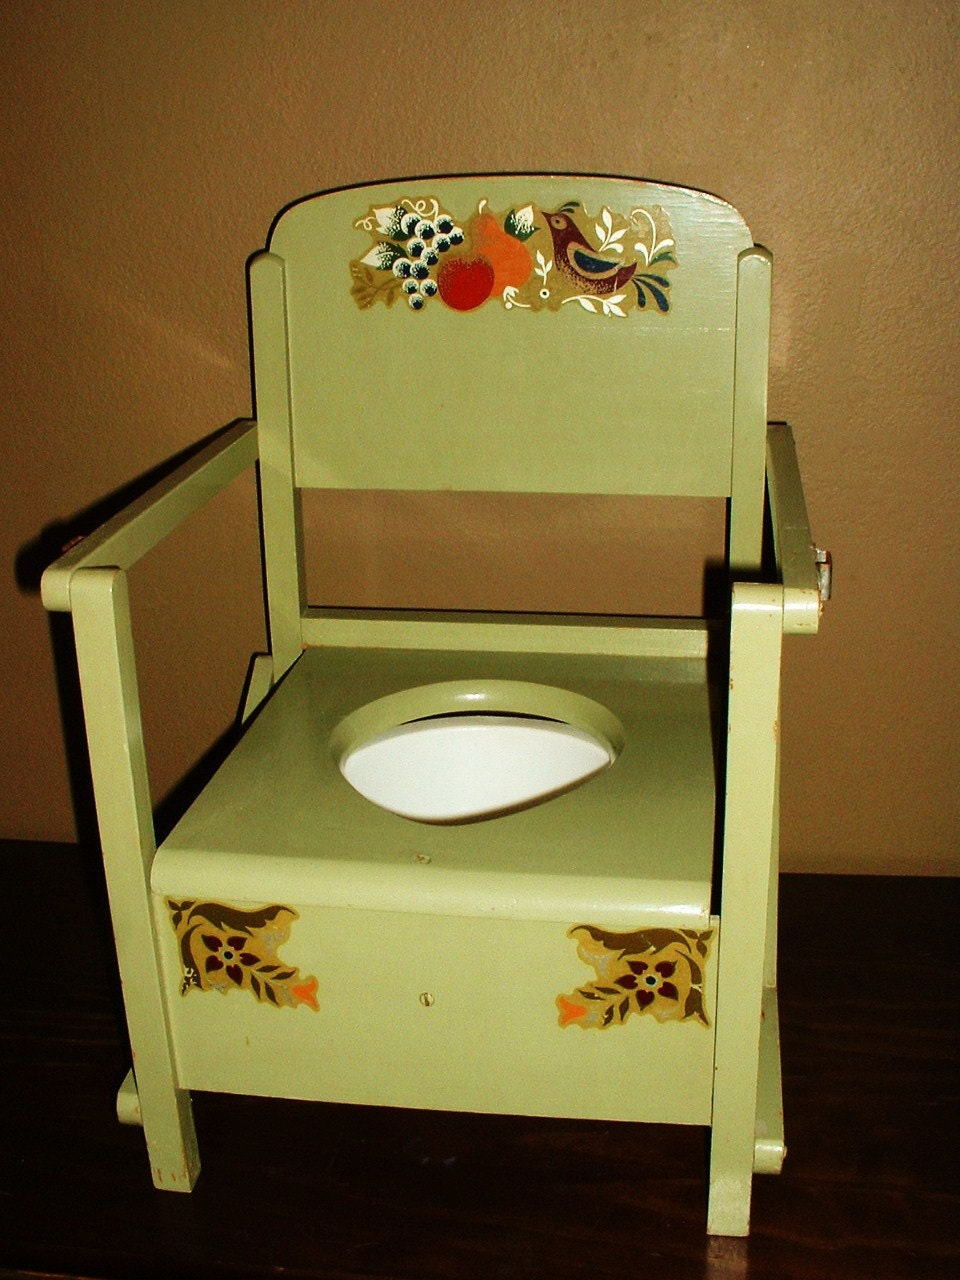 Vintage Wood Childs Potty Chair Toilet Sage Green